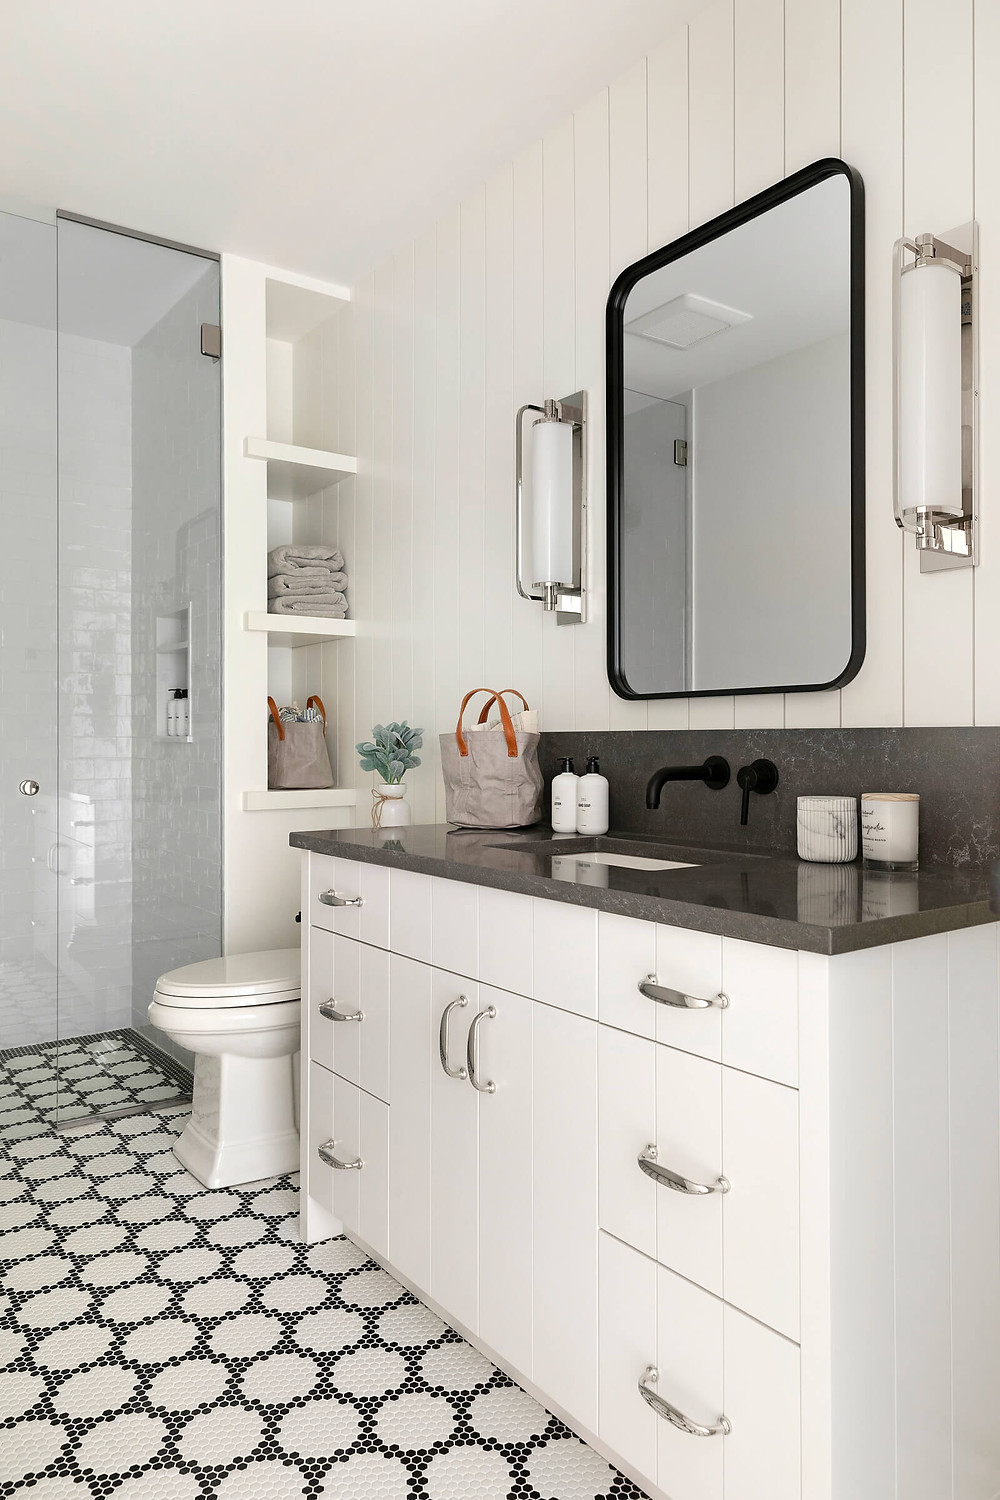 Black and white glass floor tile, painted v groove bathroom vanity, black countertop and polished nickel finishes.